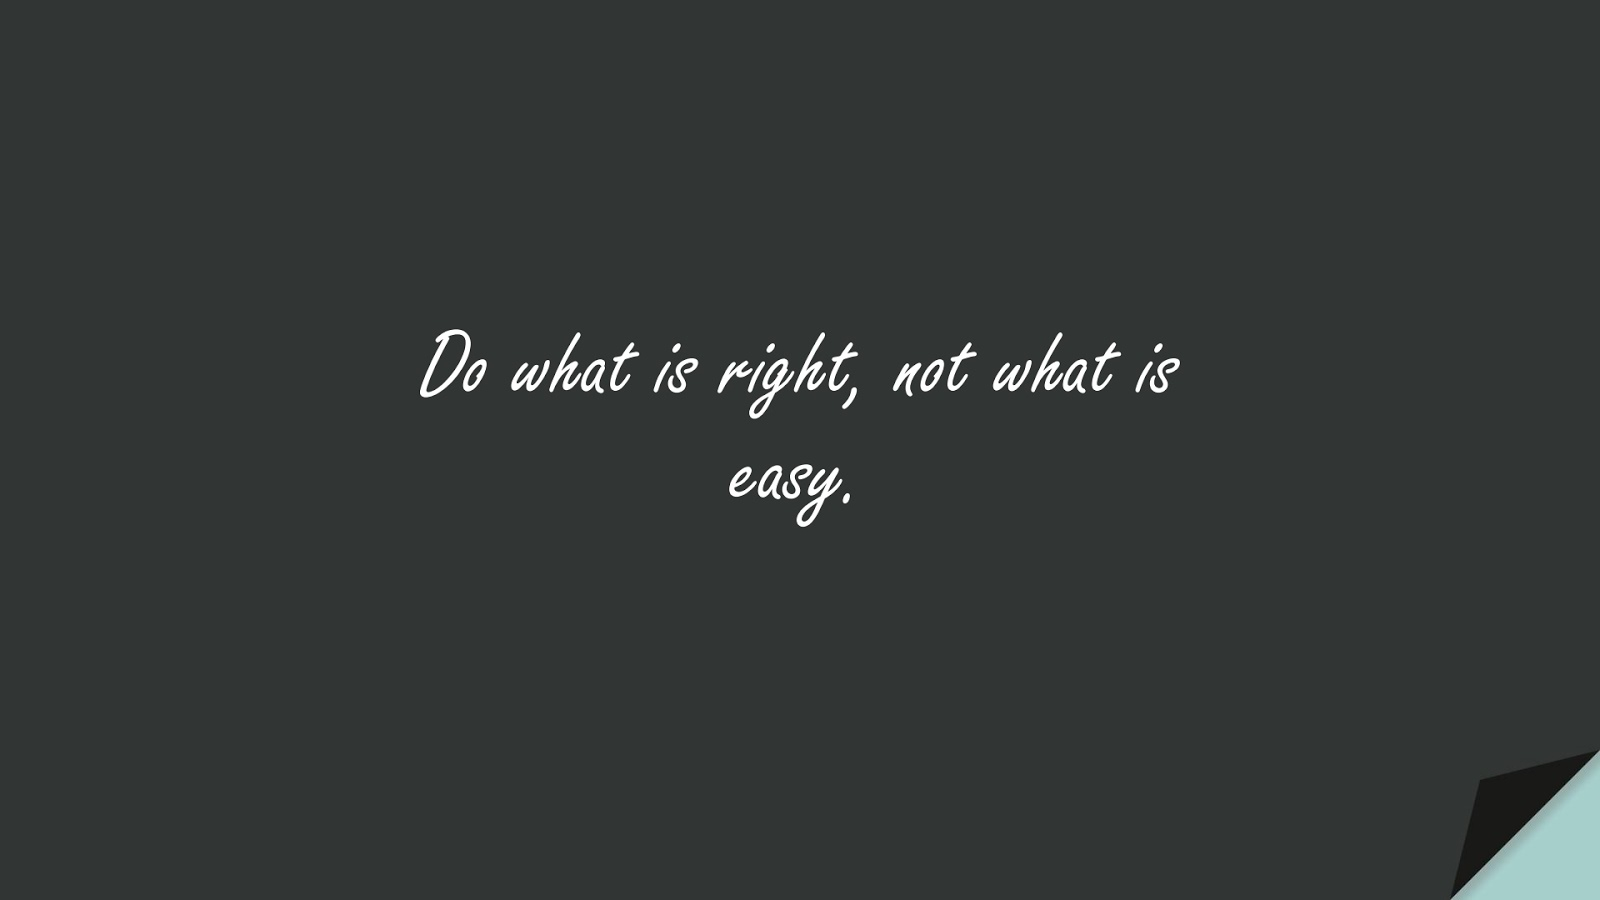 Do what is right, not what is easy.FALSE